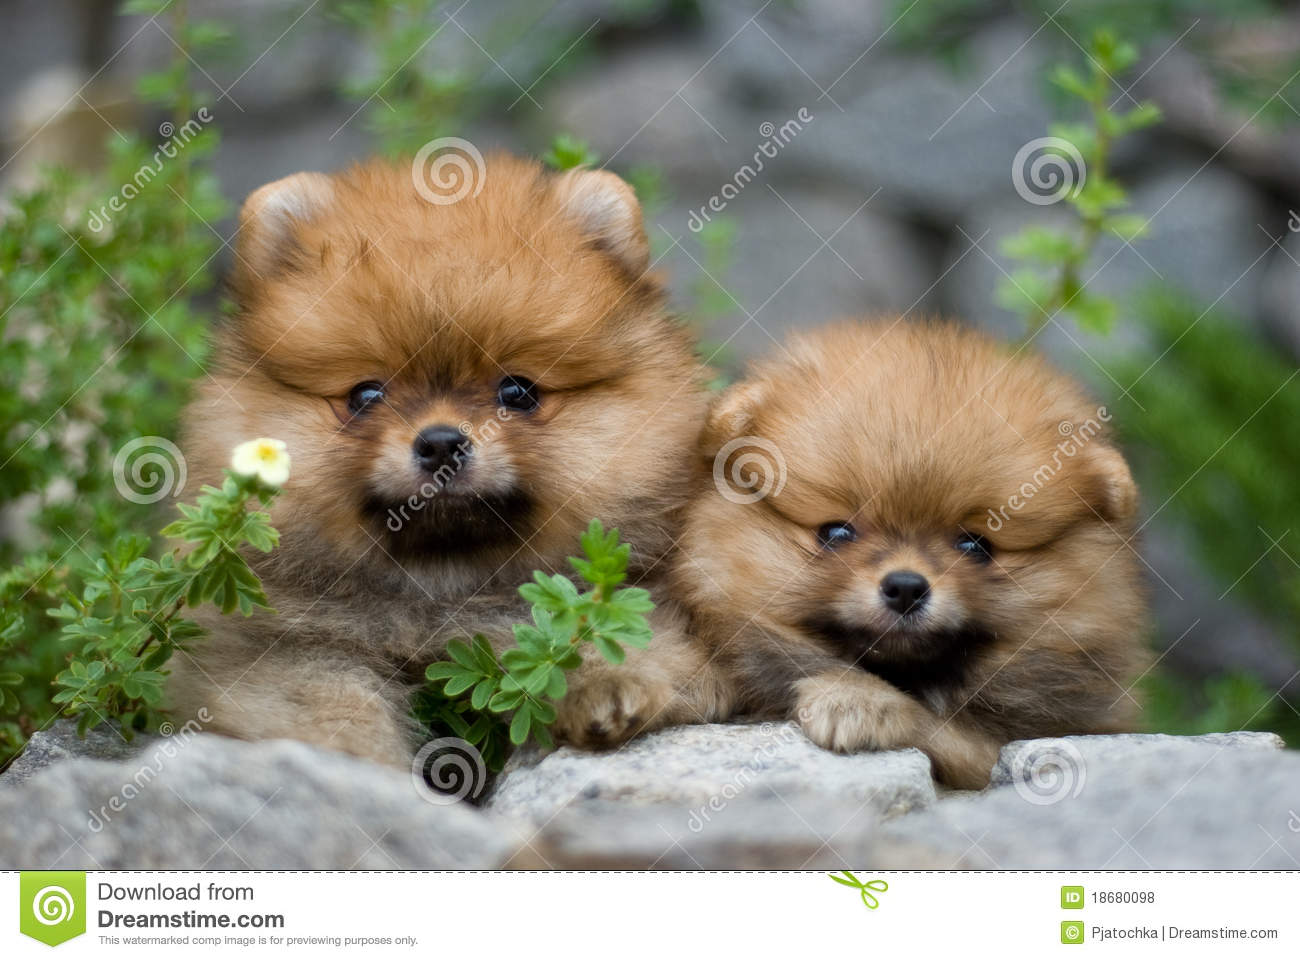 Puppies in nature